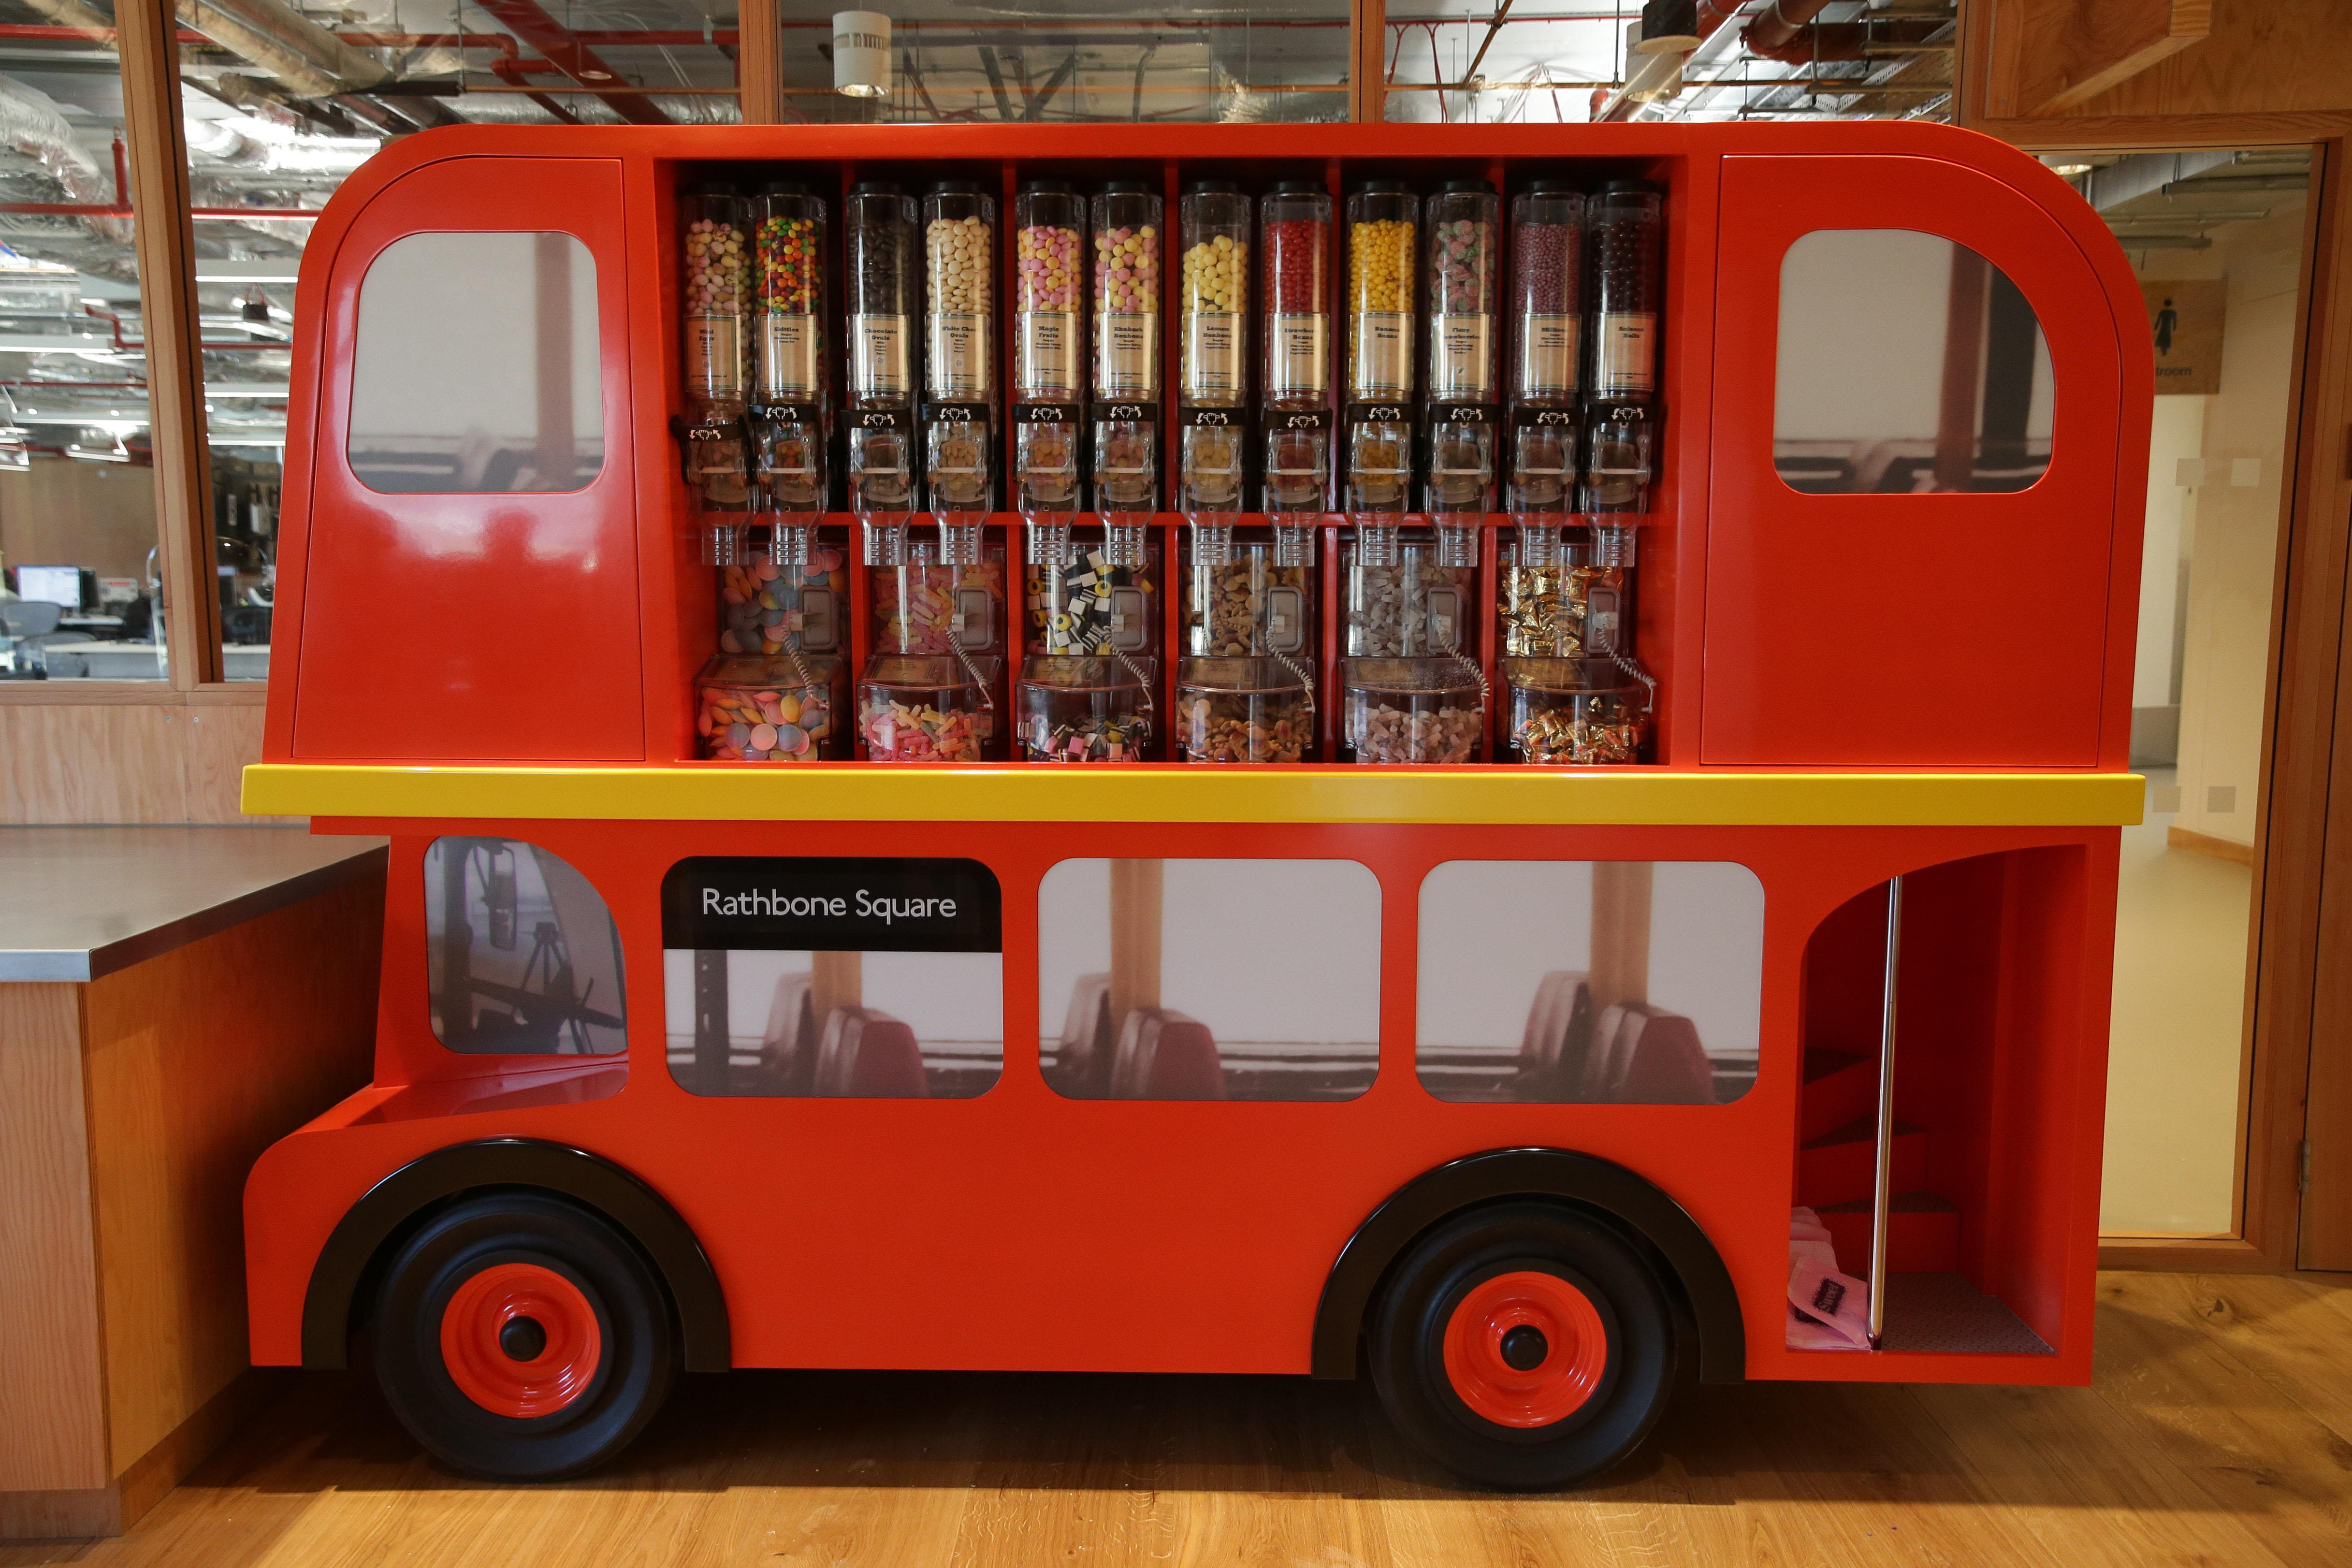 A candy dispenser decorated as a double-decker London bus is displayed at Facebook's new headquarters, designed by Canadian-born American architect Frank Gehry, at Rathbone Place in central London on December 4, 2017.         Social media titan Facebook opened a new office in London on December 4, 2017, that is set to be its biggest engineering hub outside America, the company has announced. / AFP PHOTO / Daniel LEAL-OLIVAS        (Photo credit should read DANIEL LEAL-OLIVAS/AFP/Getty Images)